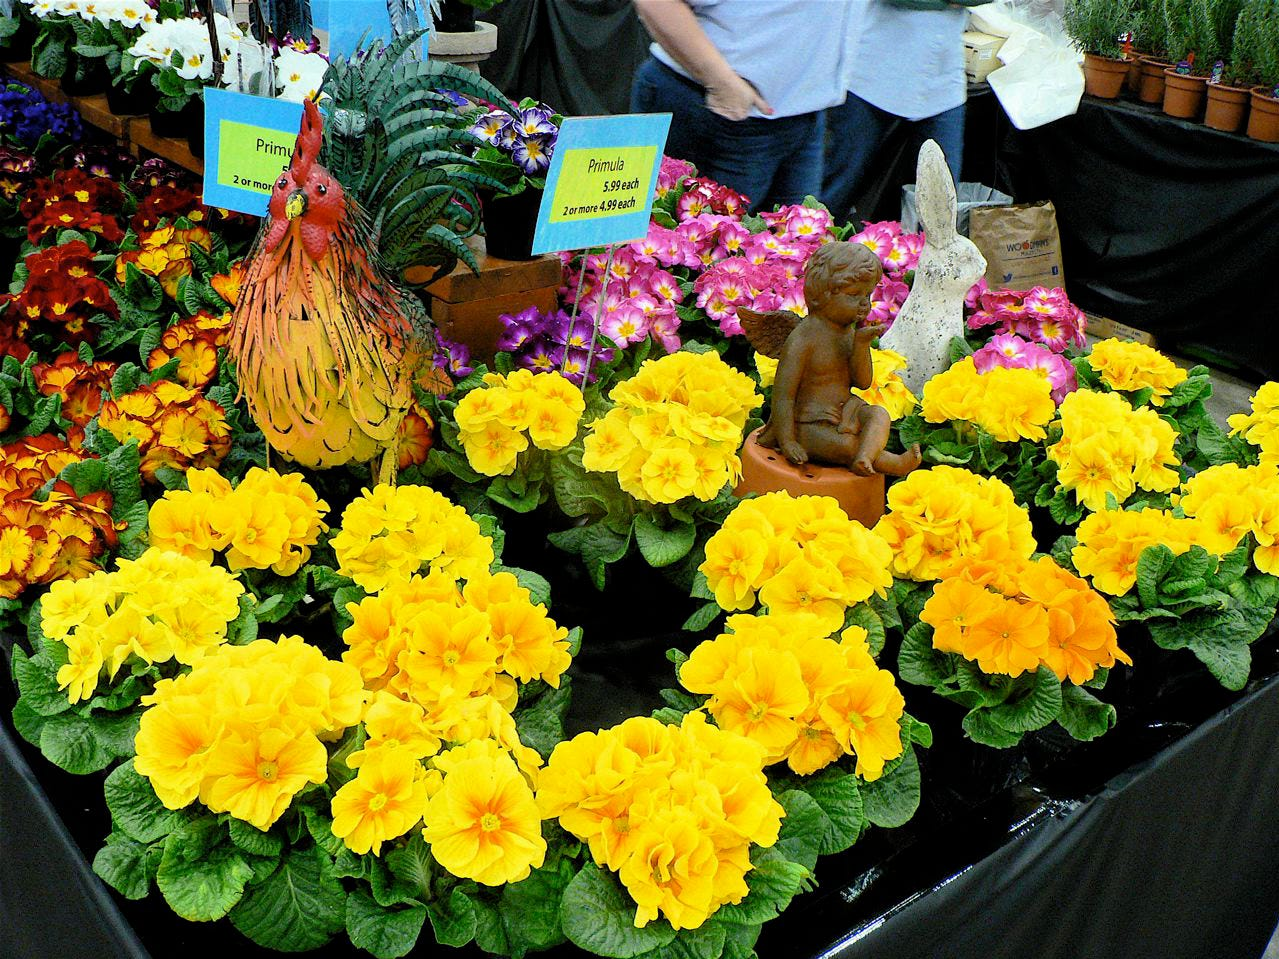 Yes, there were flowers at the Garden Expo. These came from America's Best Flowers at Cottage Grove.